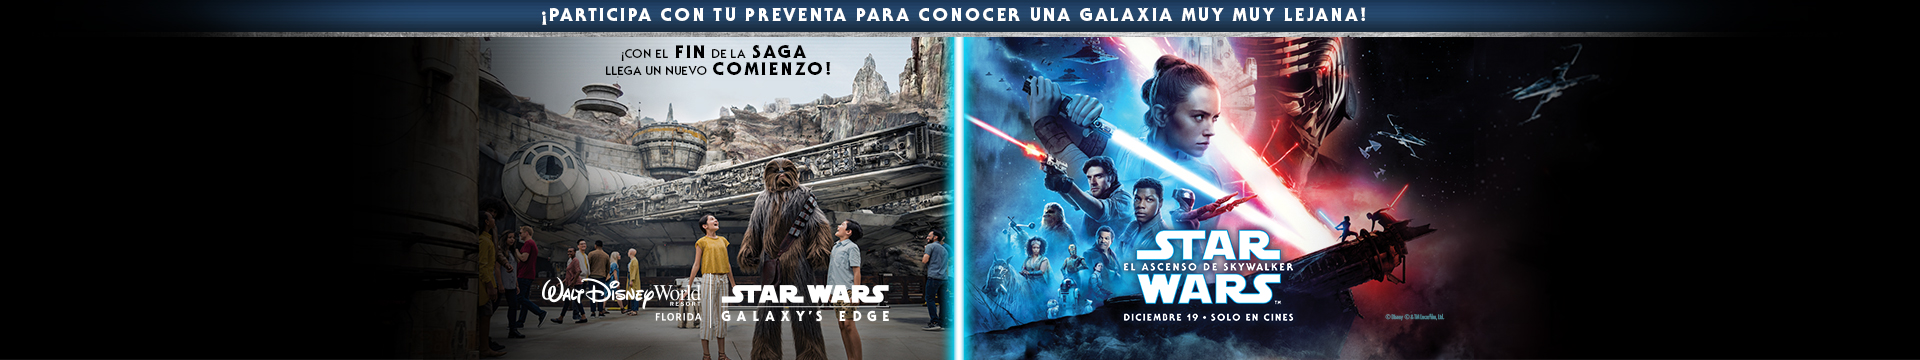 Preventa Star Wars El Ascenso de Skywalker